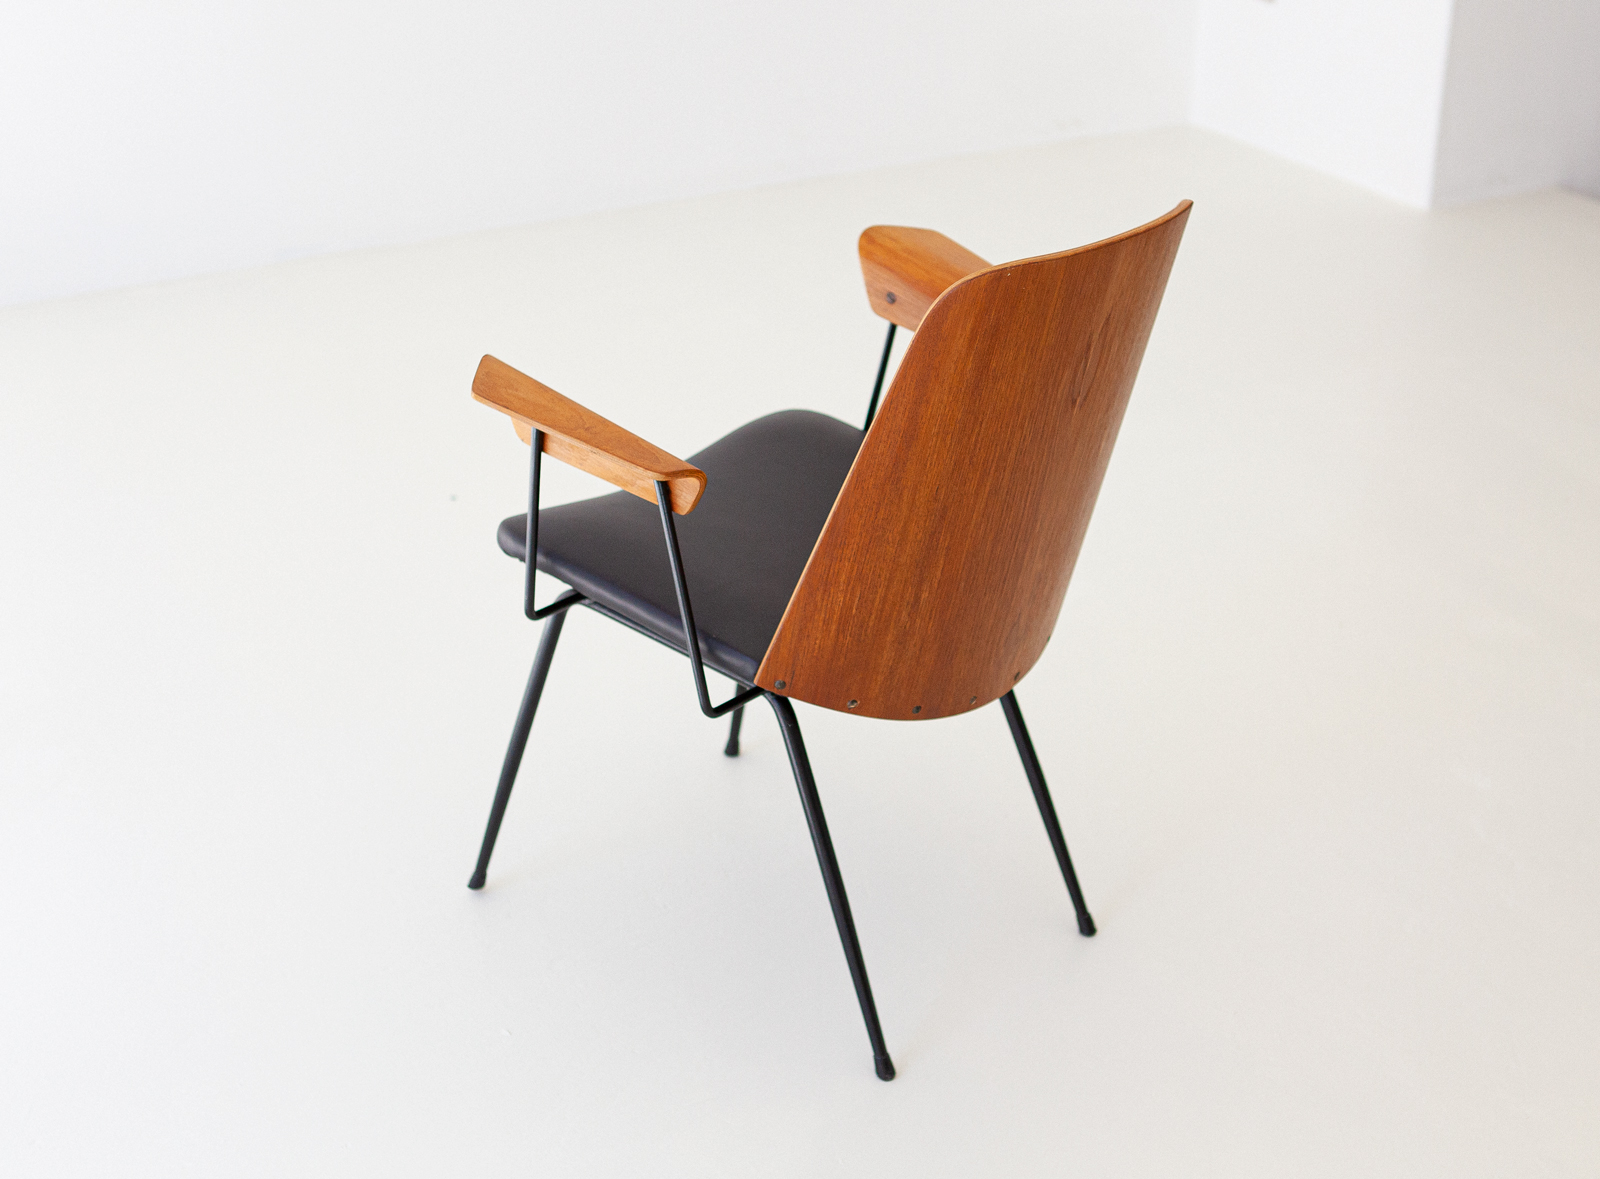 Italian-modern-desk-chairs-by-carlo-ratti-2-se287